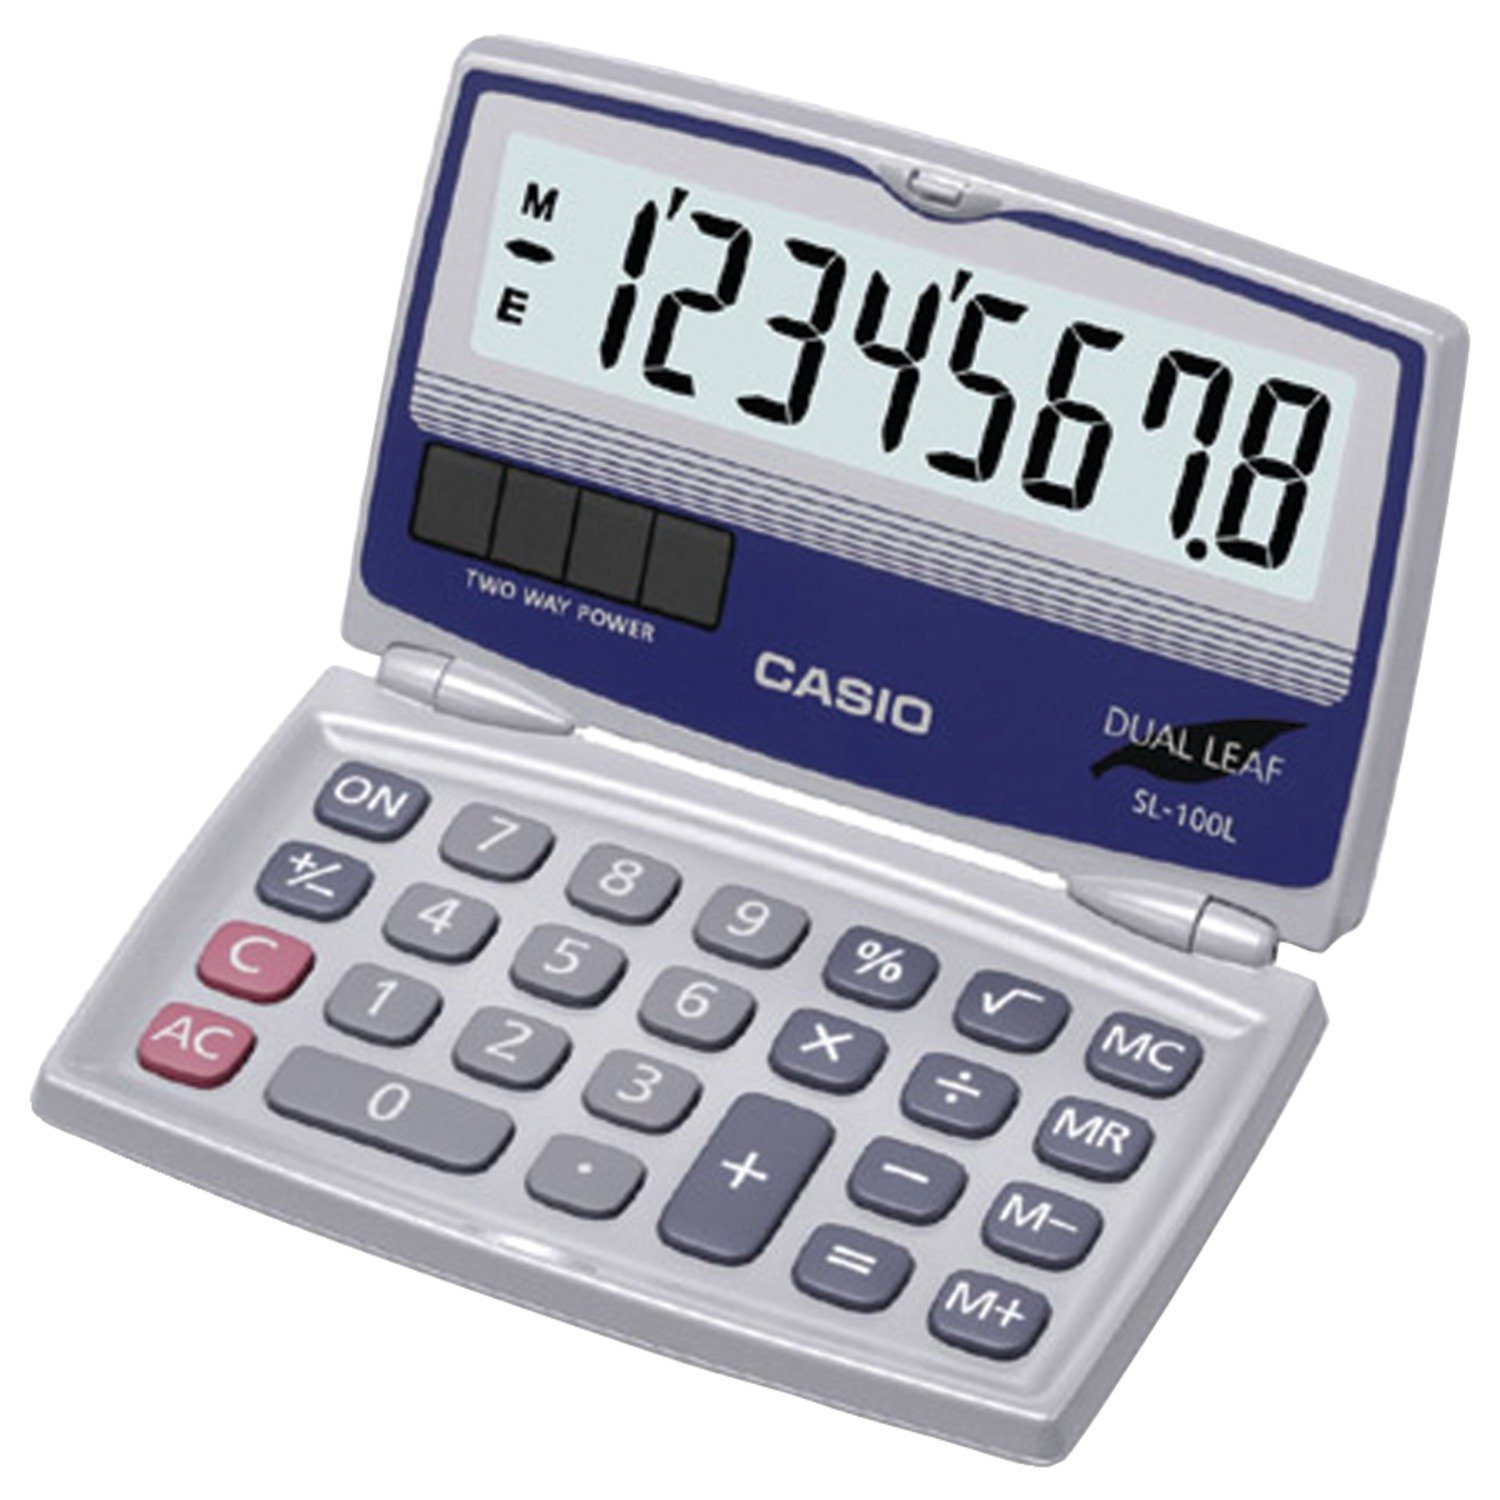 Casio Basic Solar Folding Compact Calculator Casio Inc. SL-100L